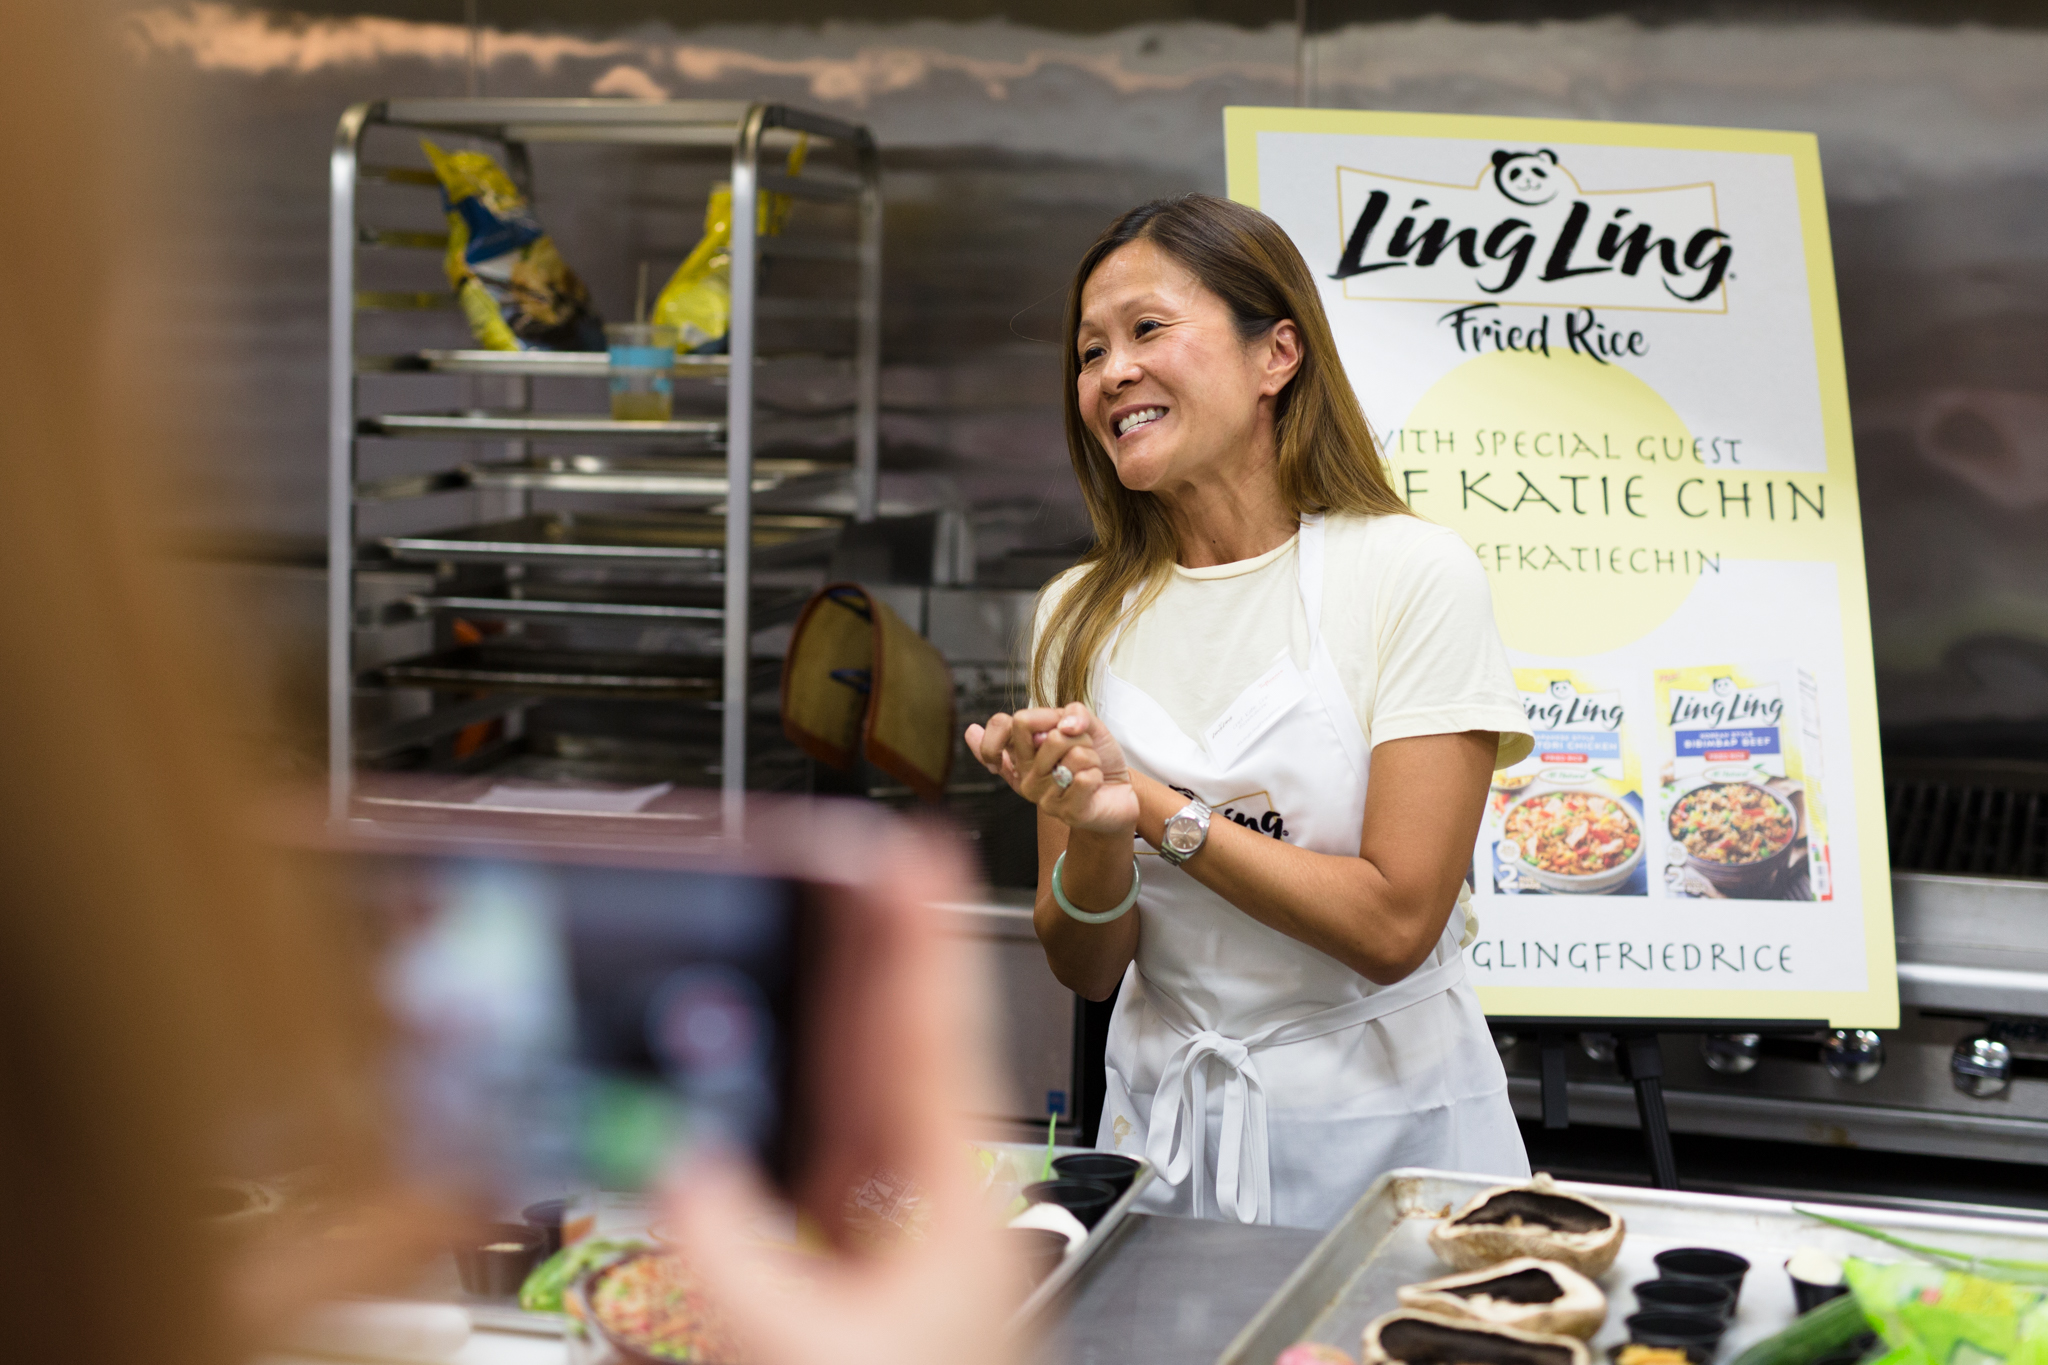 Ling Ling Los Angeles Event Photos 7.19.17-19.jpg